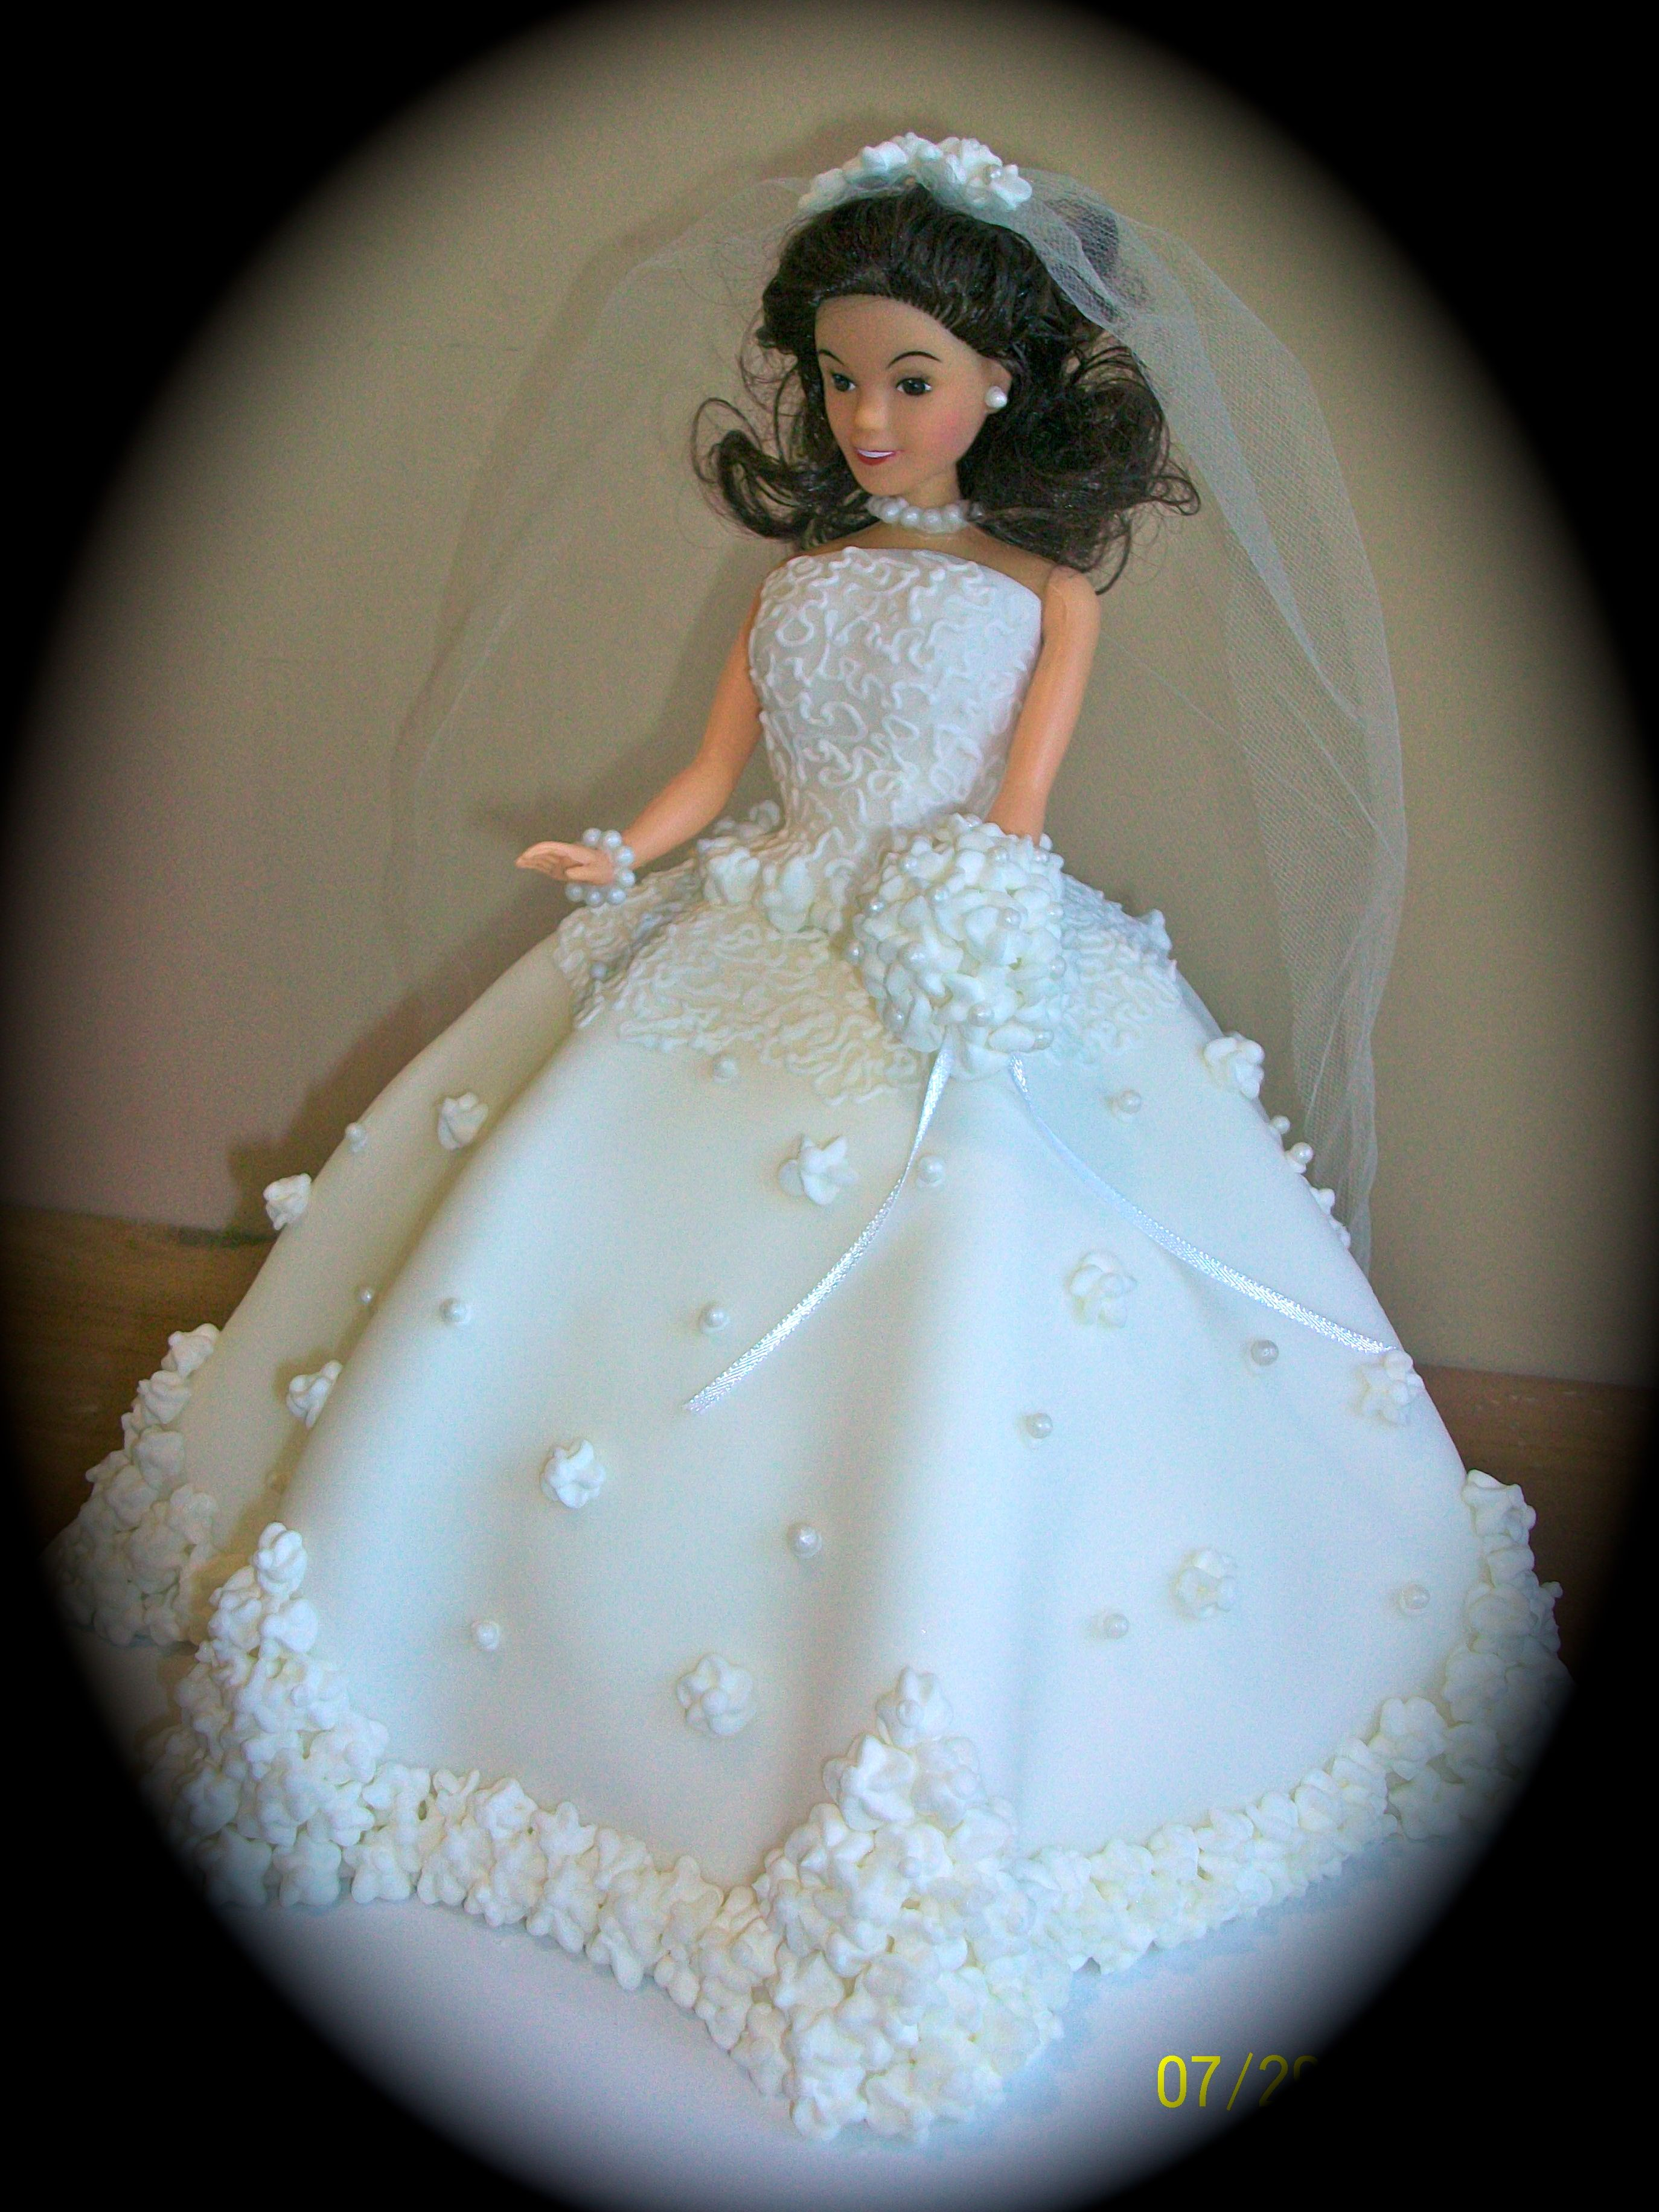 Bride Doll Cake for a Bridal Shower | Things I\'ve Made | Pinterest ...